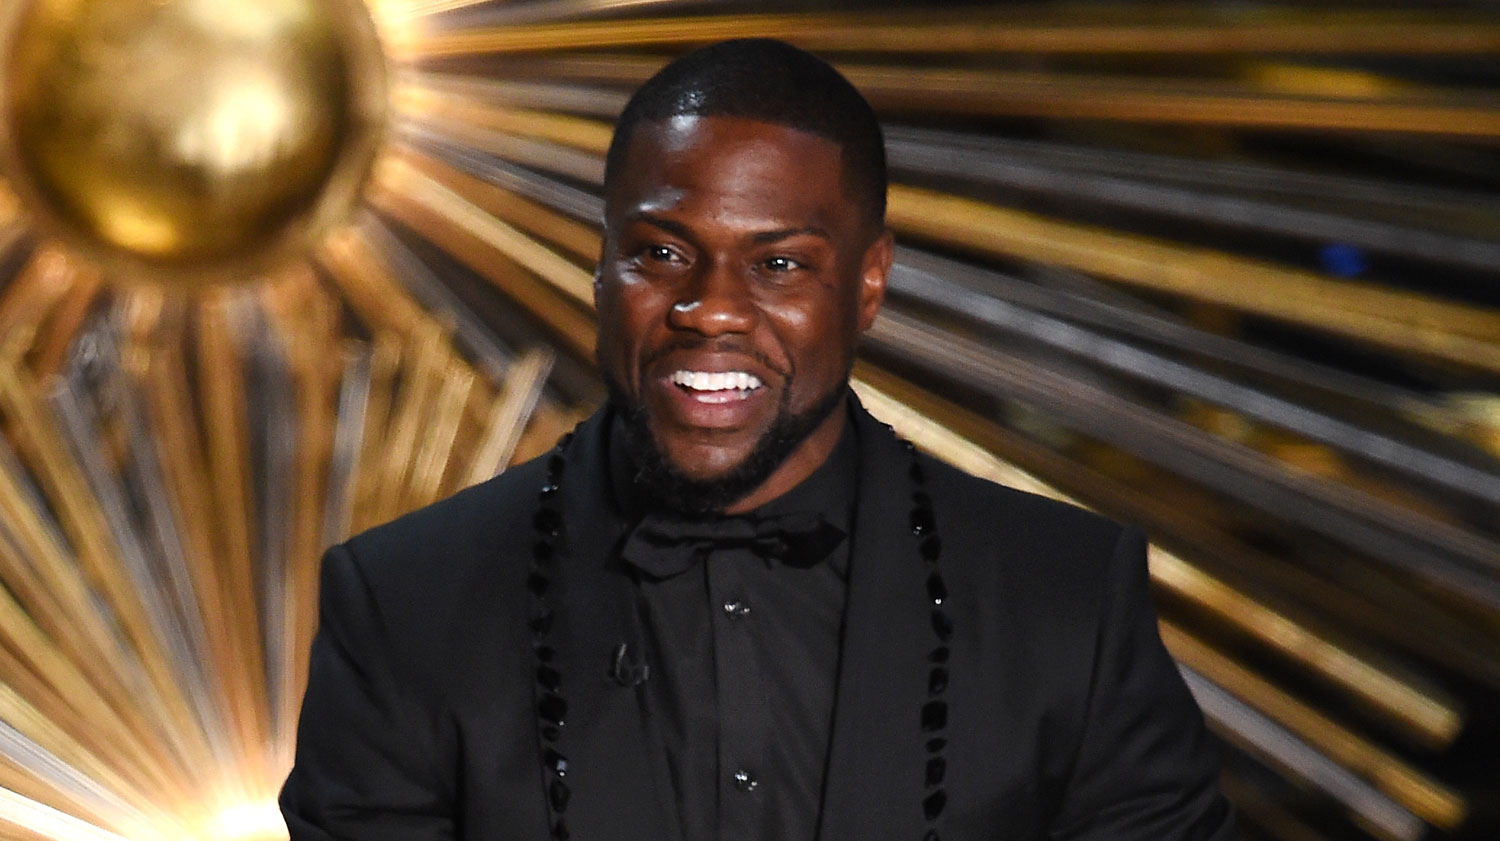 Kevin Hart Pays Tribute To Actors Of Color At Oscars 2016